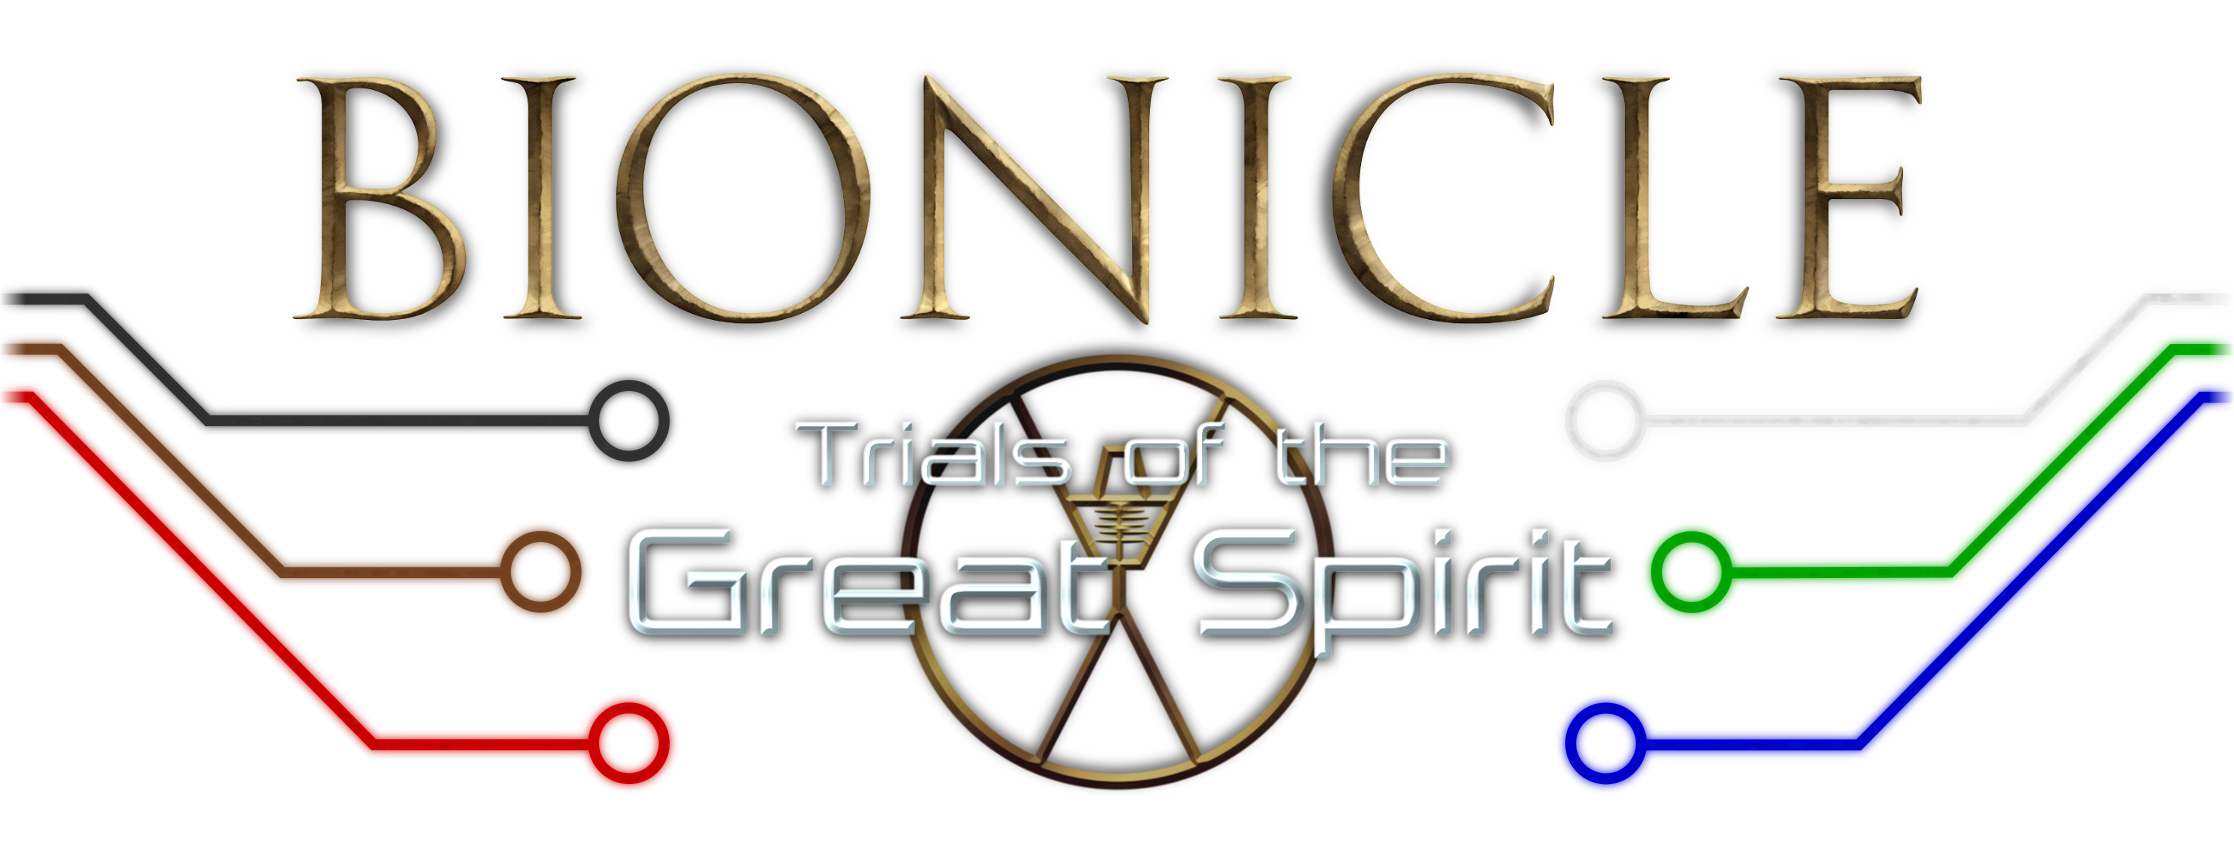 Bionicle: Trials of the Great Spirit